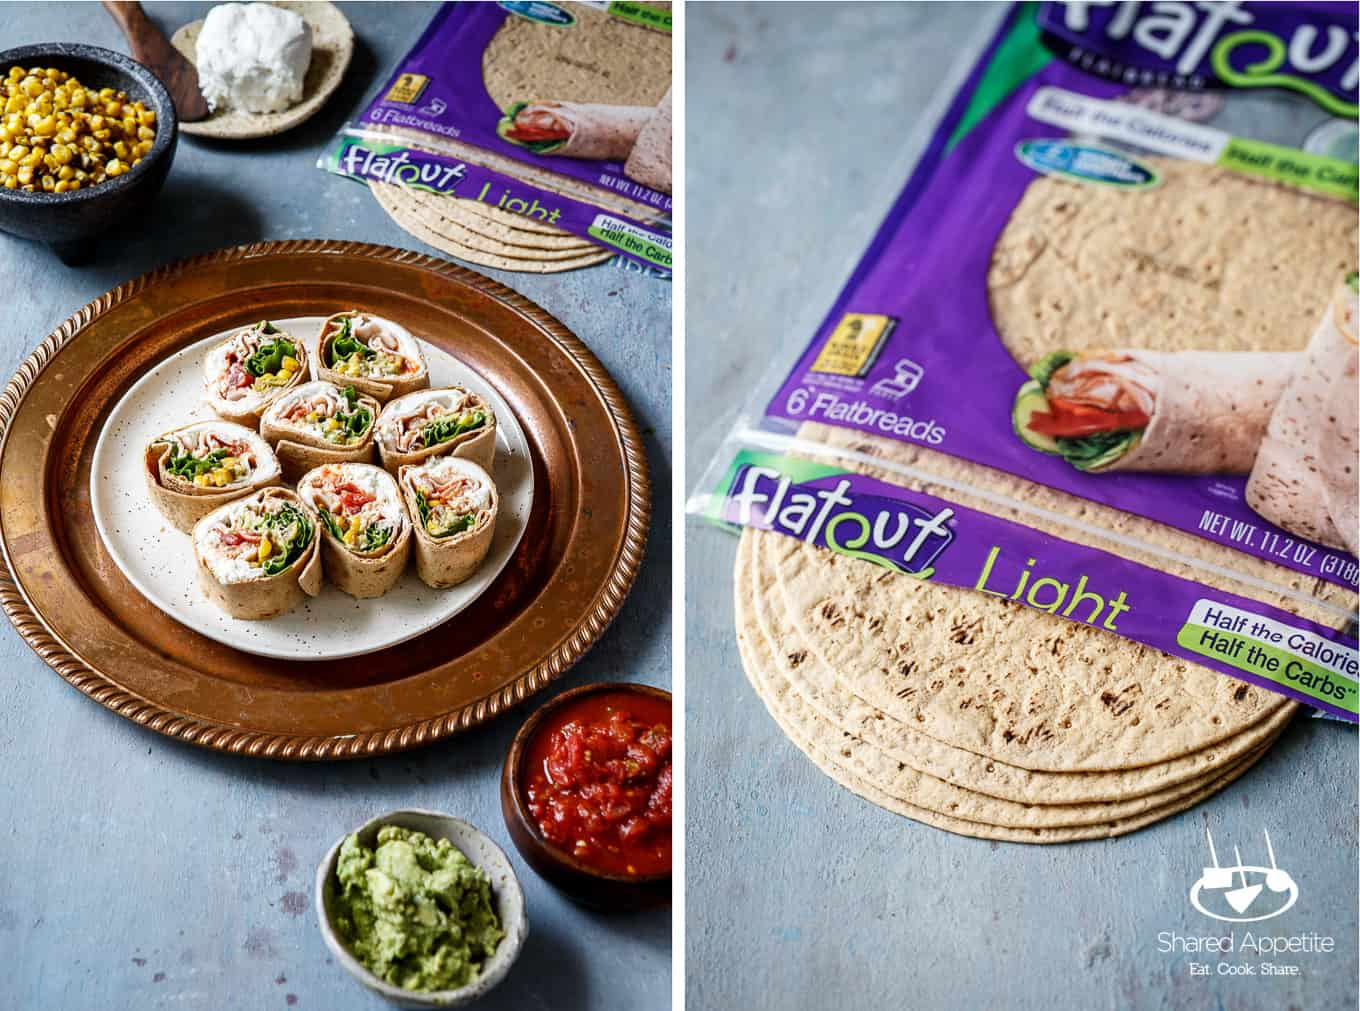 Flatout Bread wraps for Southwest Turkey Wraps | sharedappetite.com